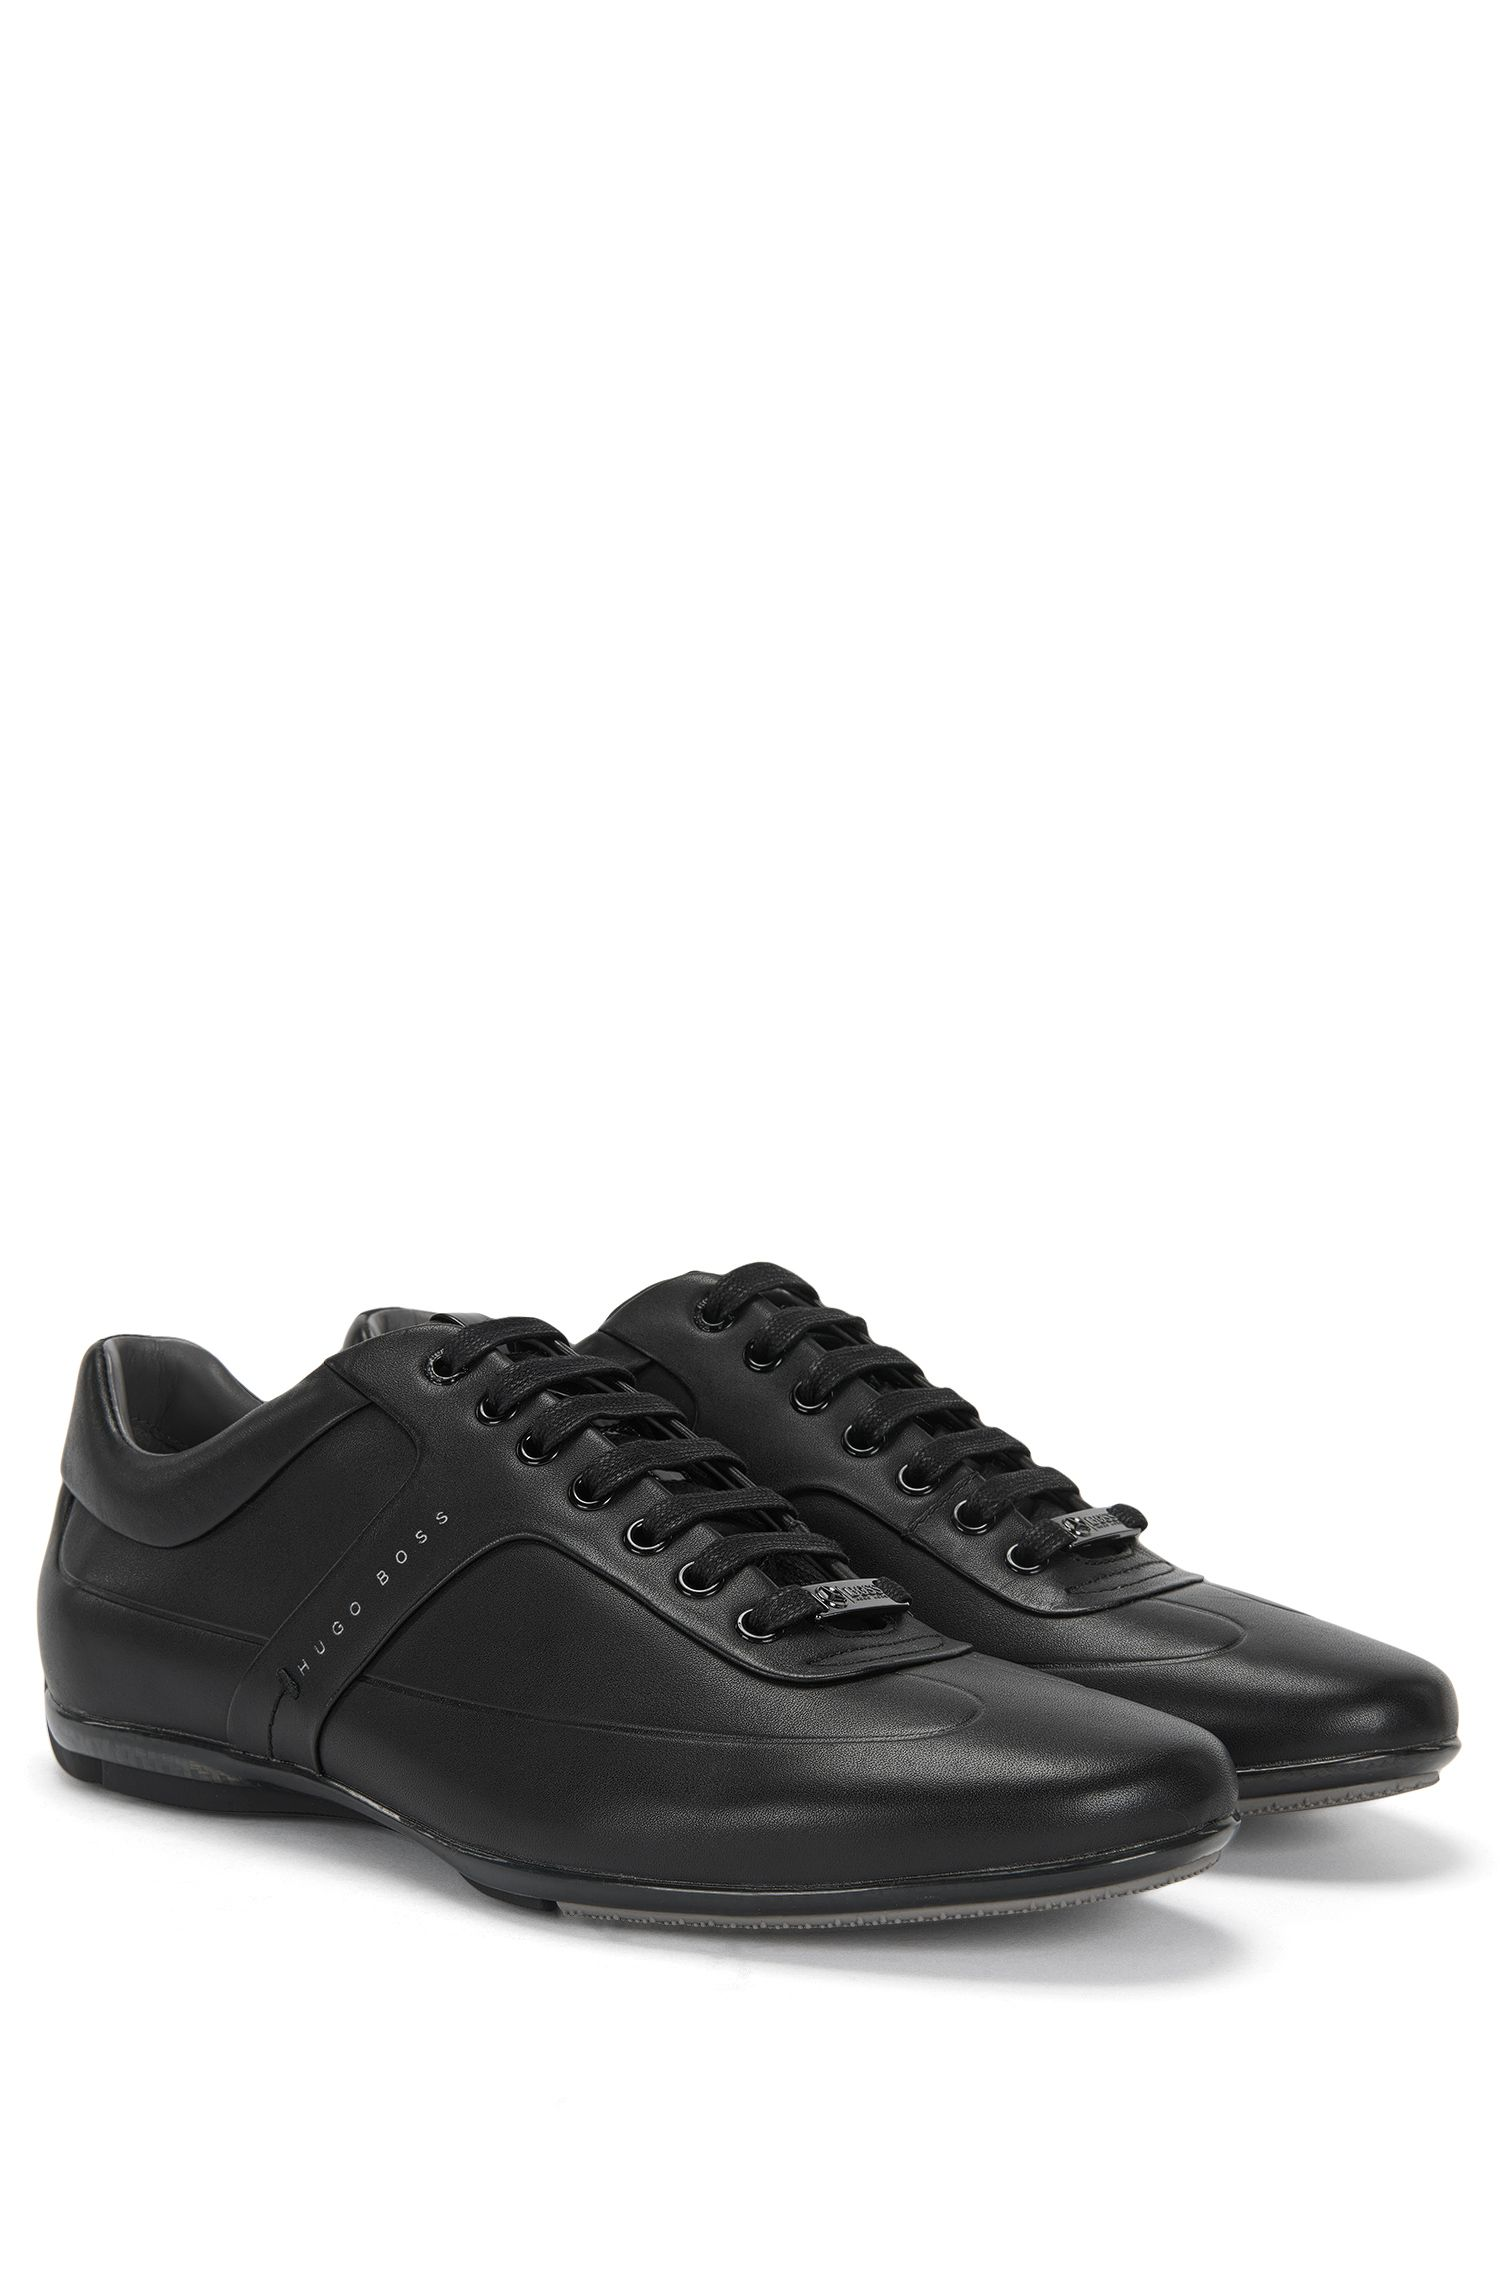 'Sporty_Lowp_lthf' | Calfskin Lace-Up Sneakers